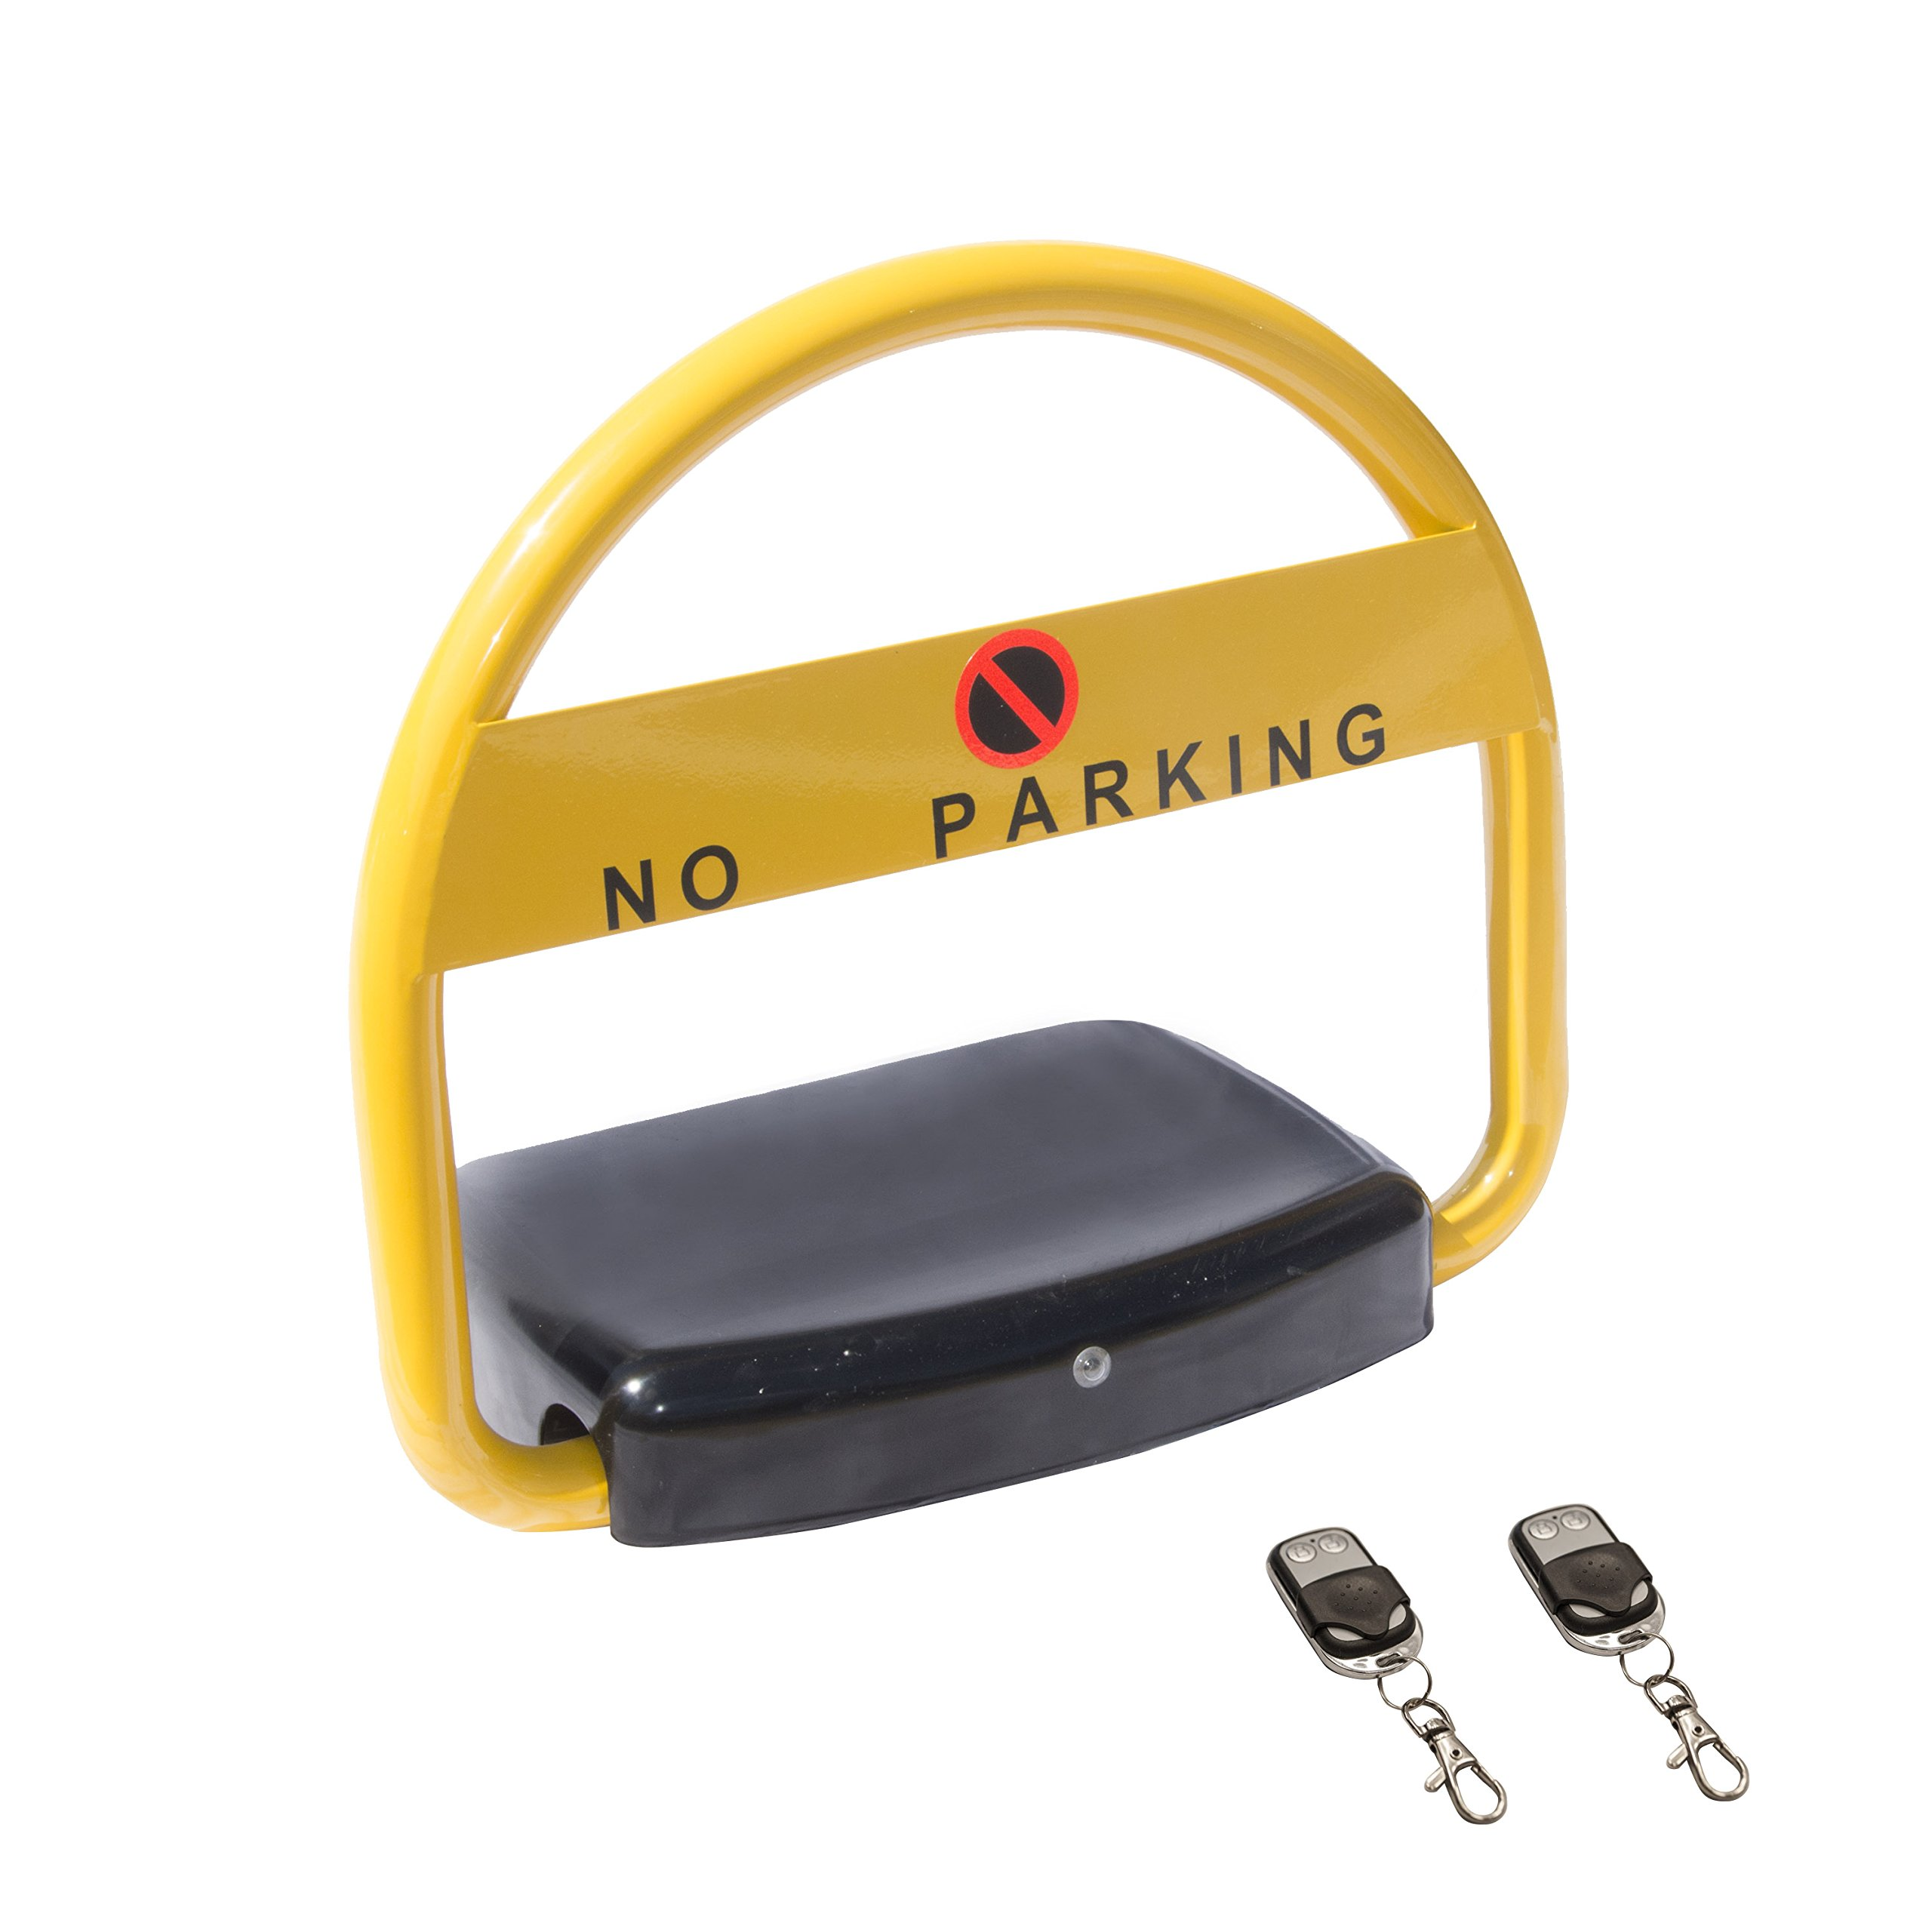 Parking Lock Automatic Remote Control Carport Auto Parking Latch Space Lock Car Park Driveway Guard Saver Automatic Barrier USA STOCK